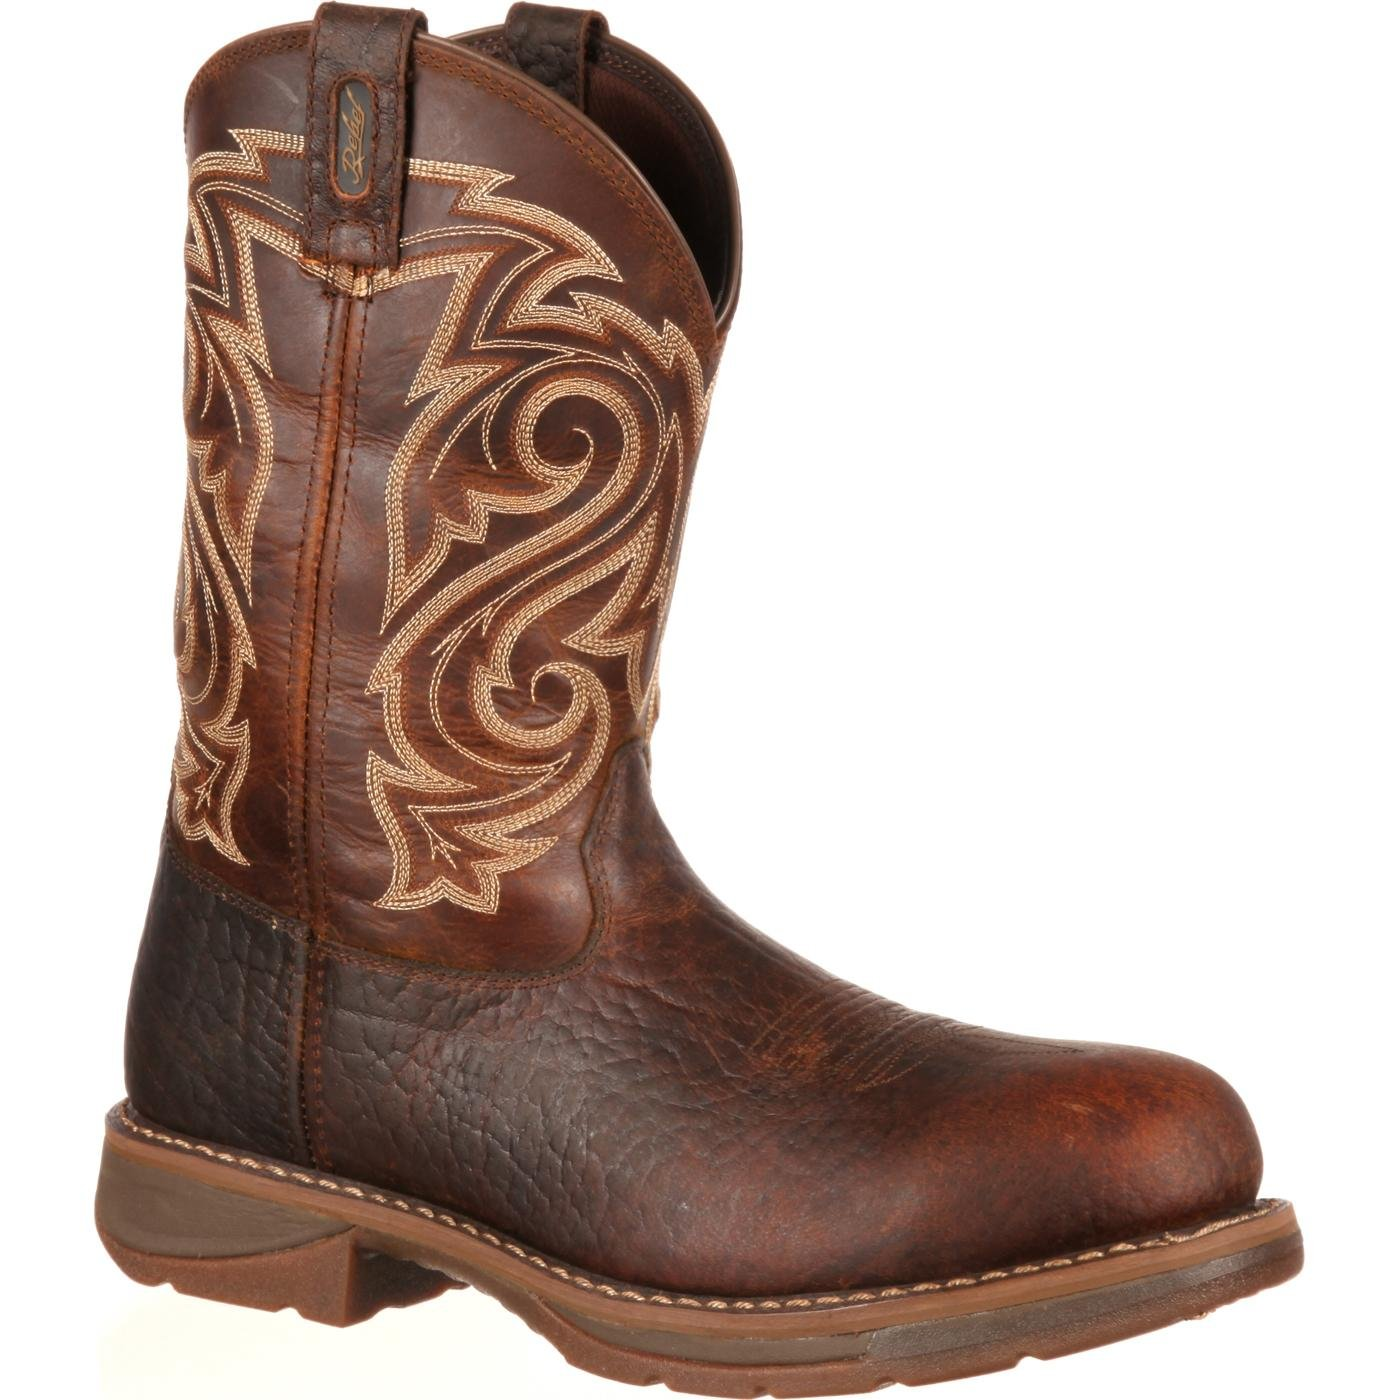 Workin' Rebel by Durango Brown Composite Toe Boot, , large